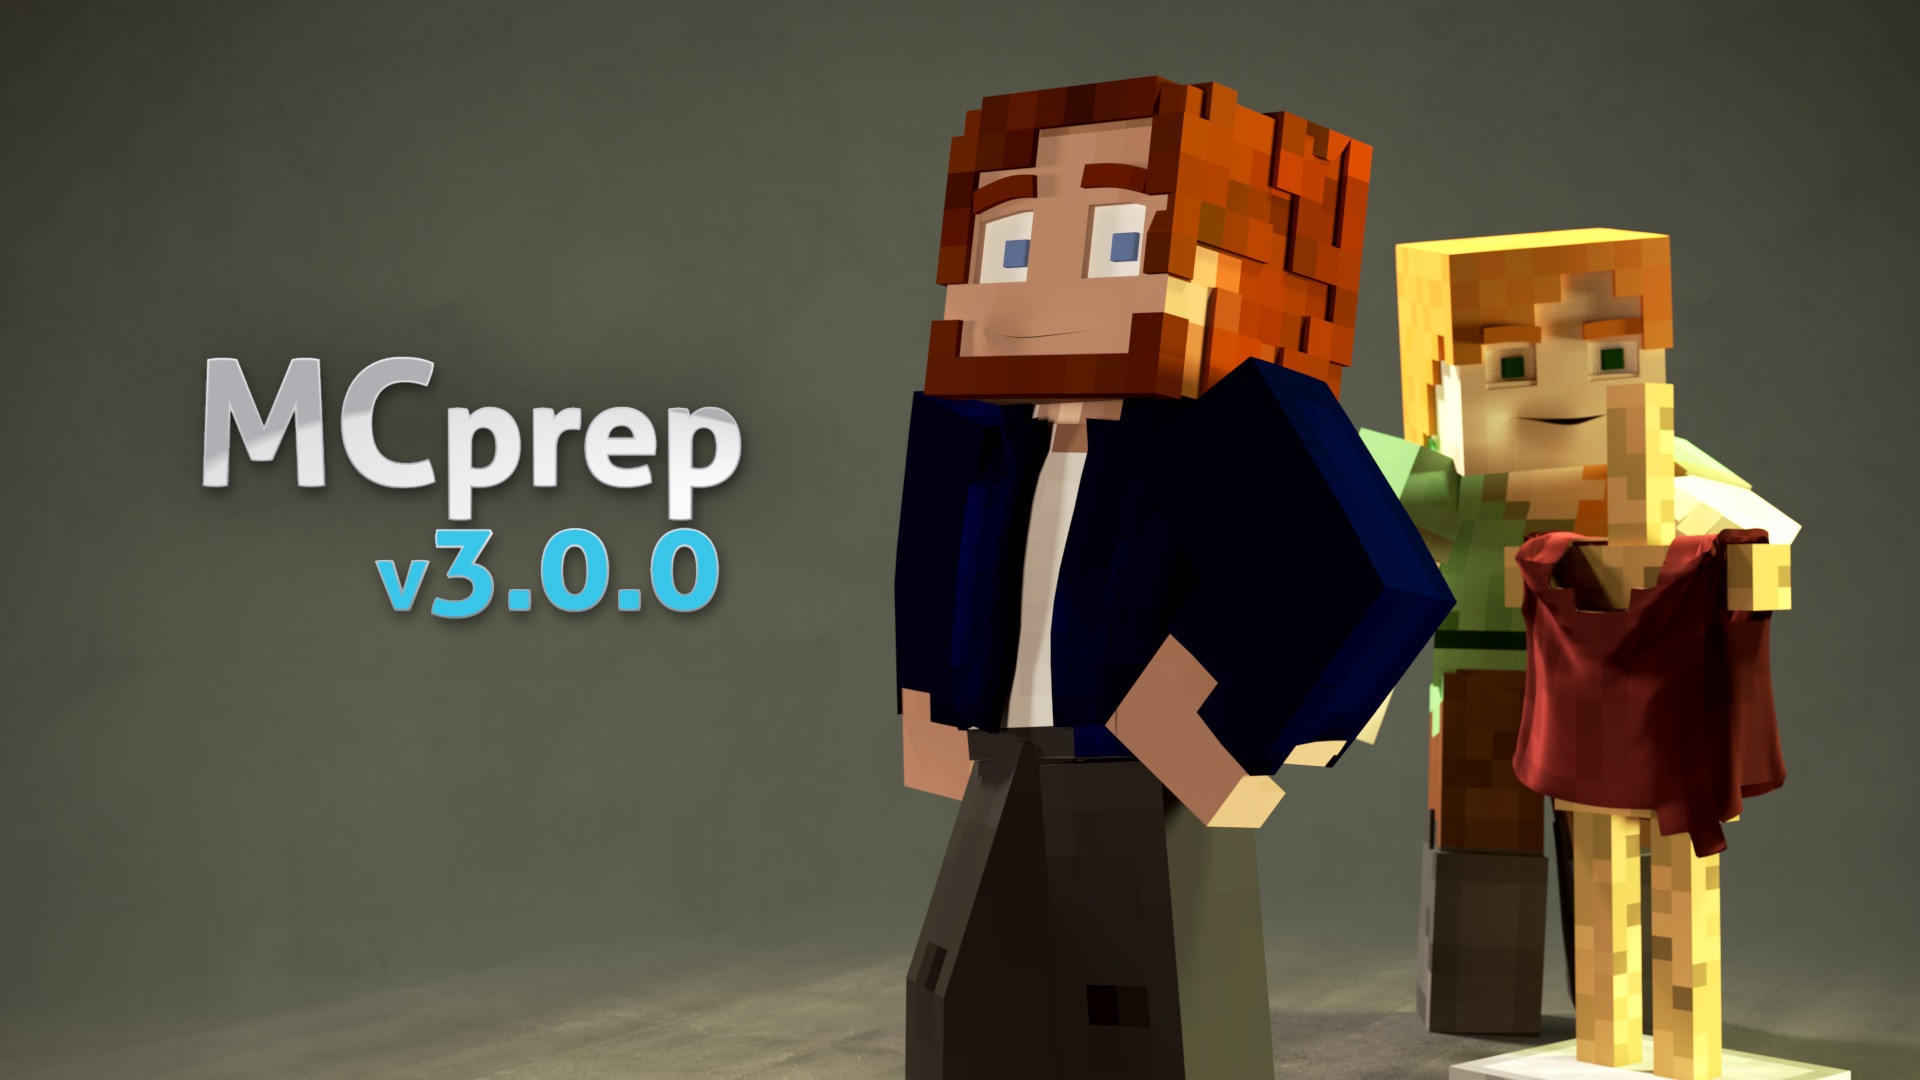 MCprep | Blender Minecraft addon | Moo-Ack! Productions